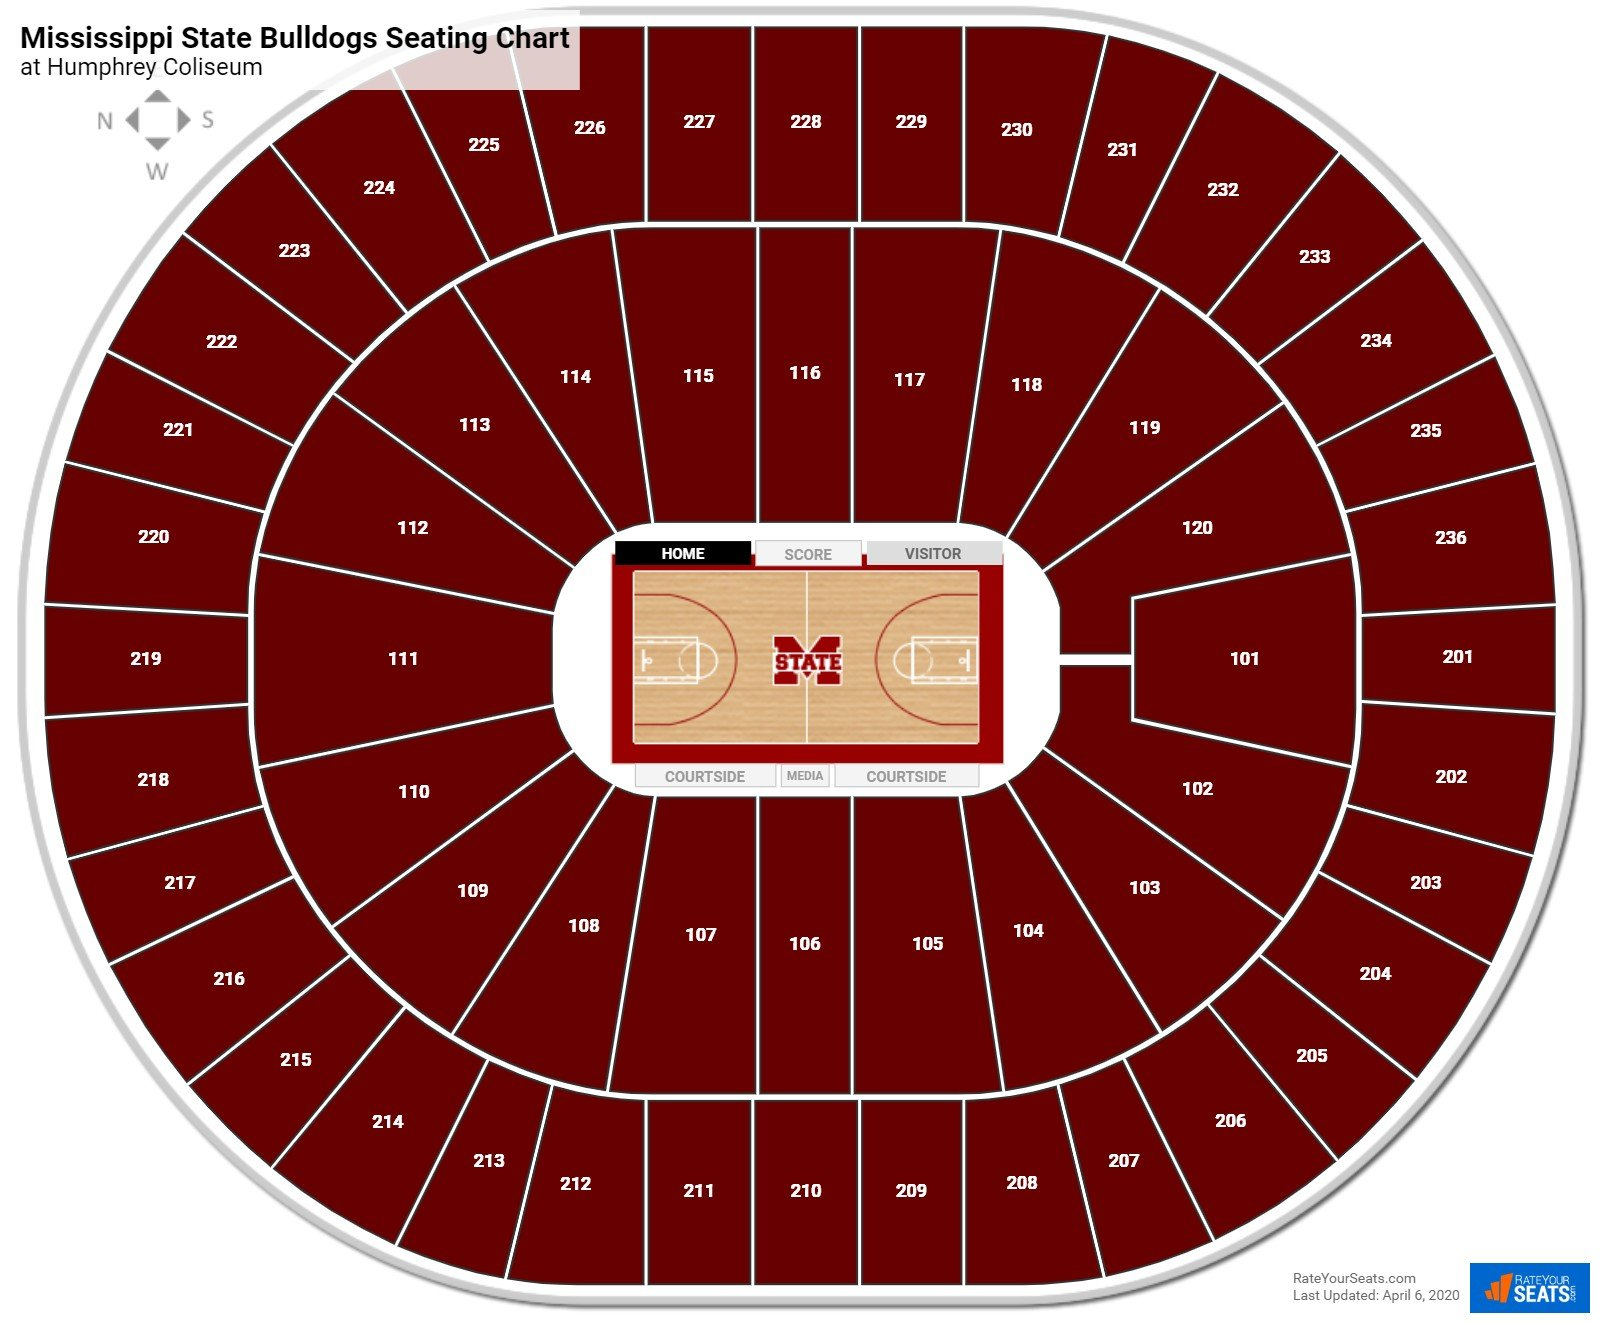 Mississippi State Basketball Seating Chart